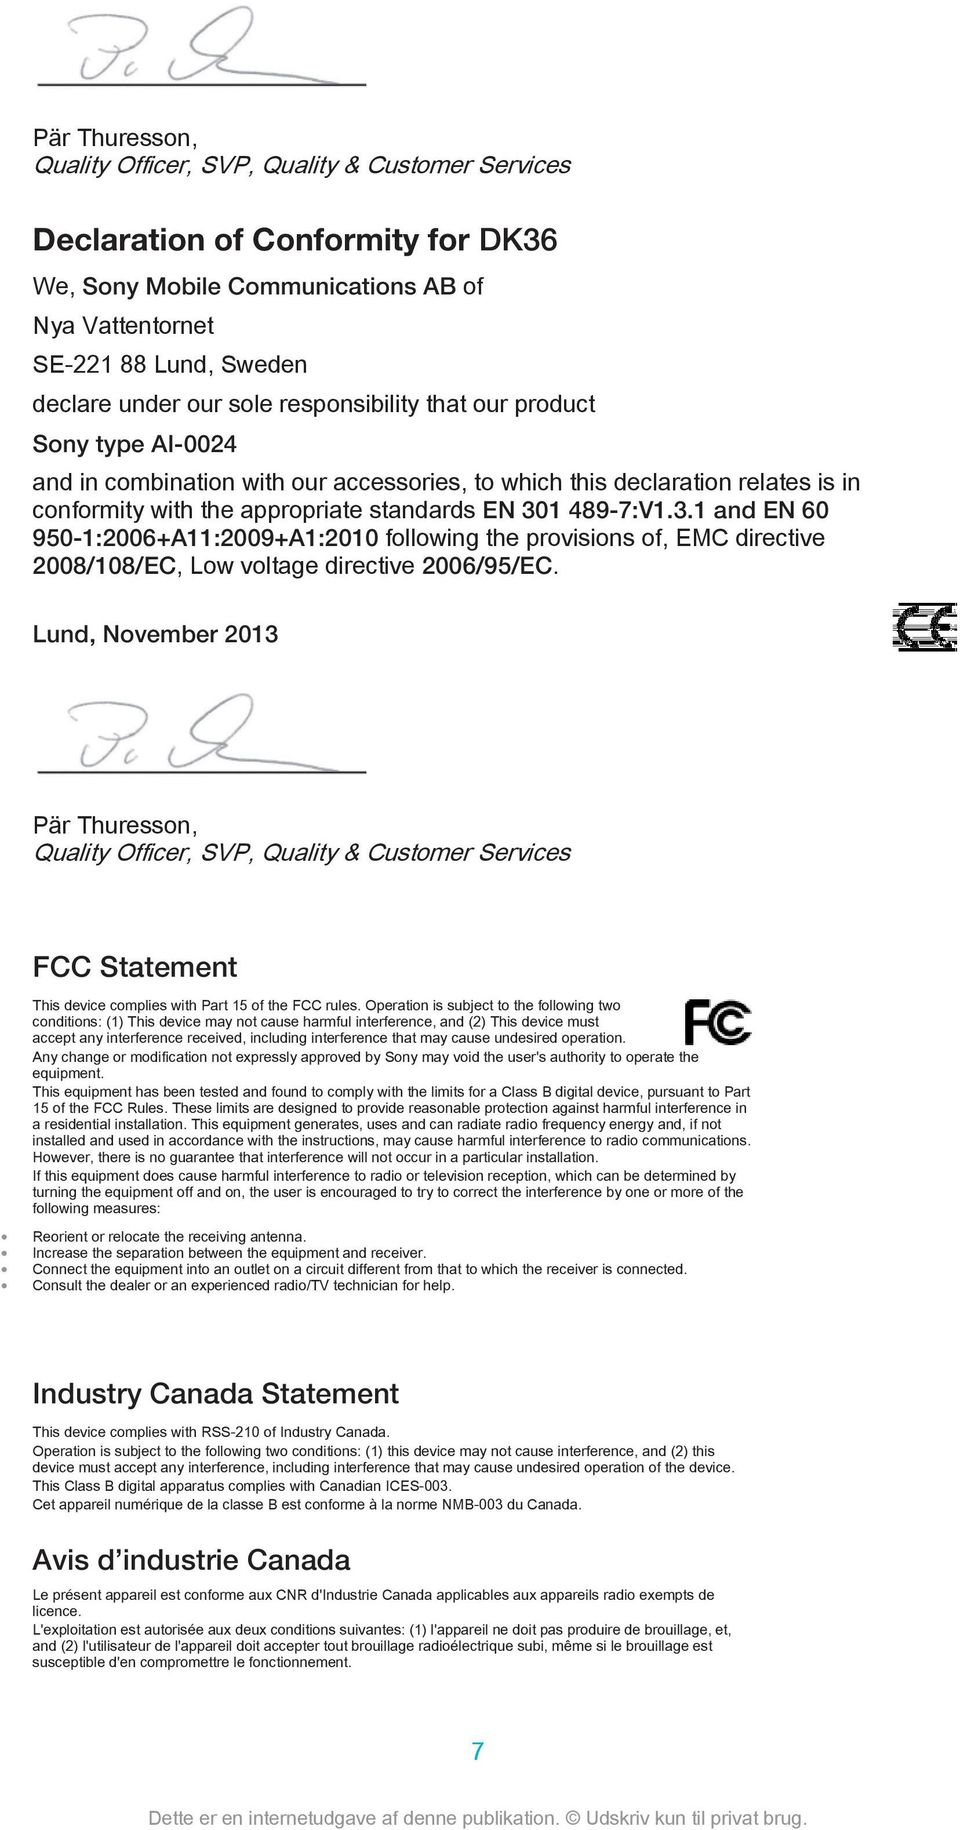 1 489-7:V1.3.1 and EN 60 950-1:2006+A11:2009+A1:2010 following the provisions of, EMC directive 2008/108/EC, Low voltage directive 2006/95/EC.